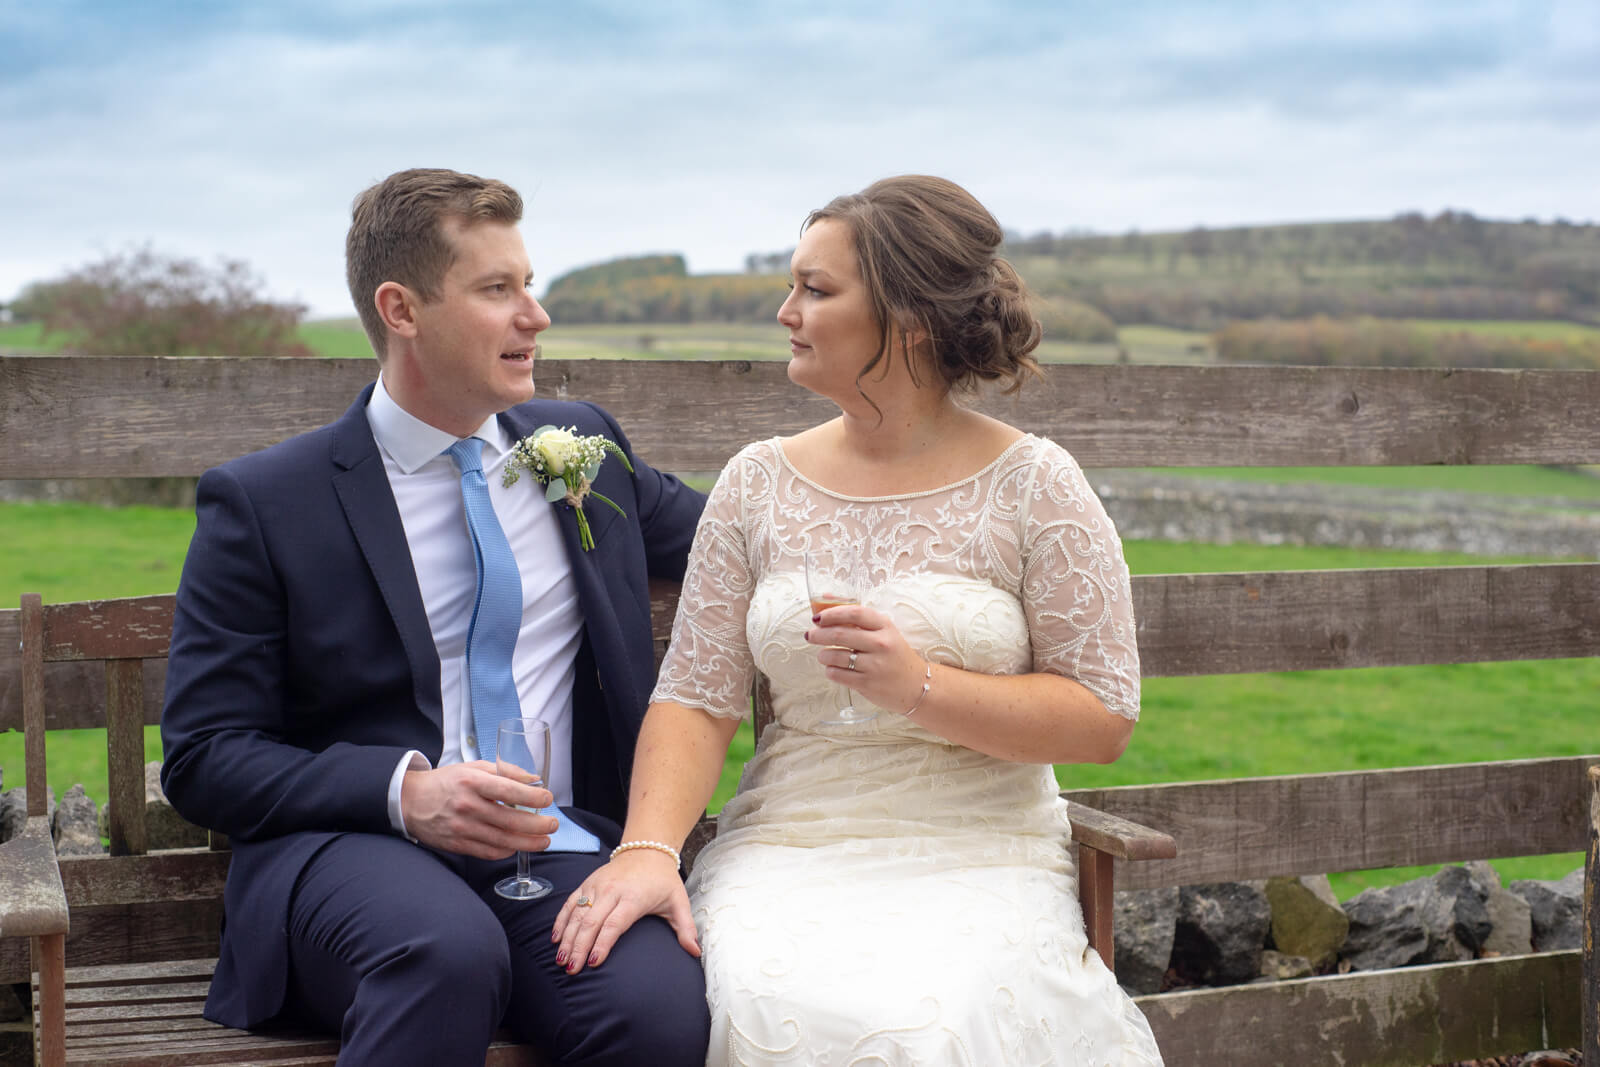 Bride and groom sit talking on a bench in front of the derbyshire countryside